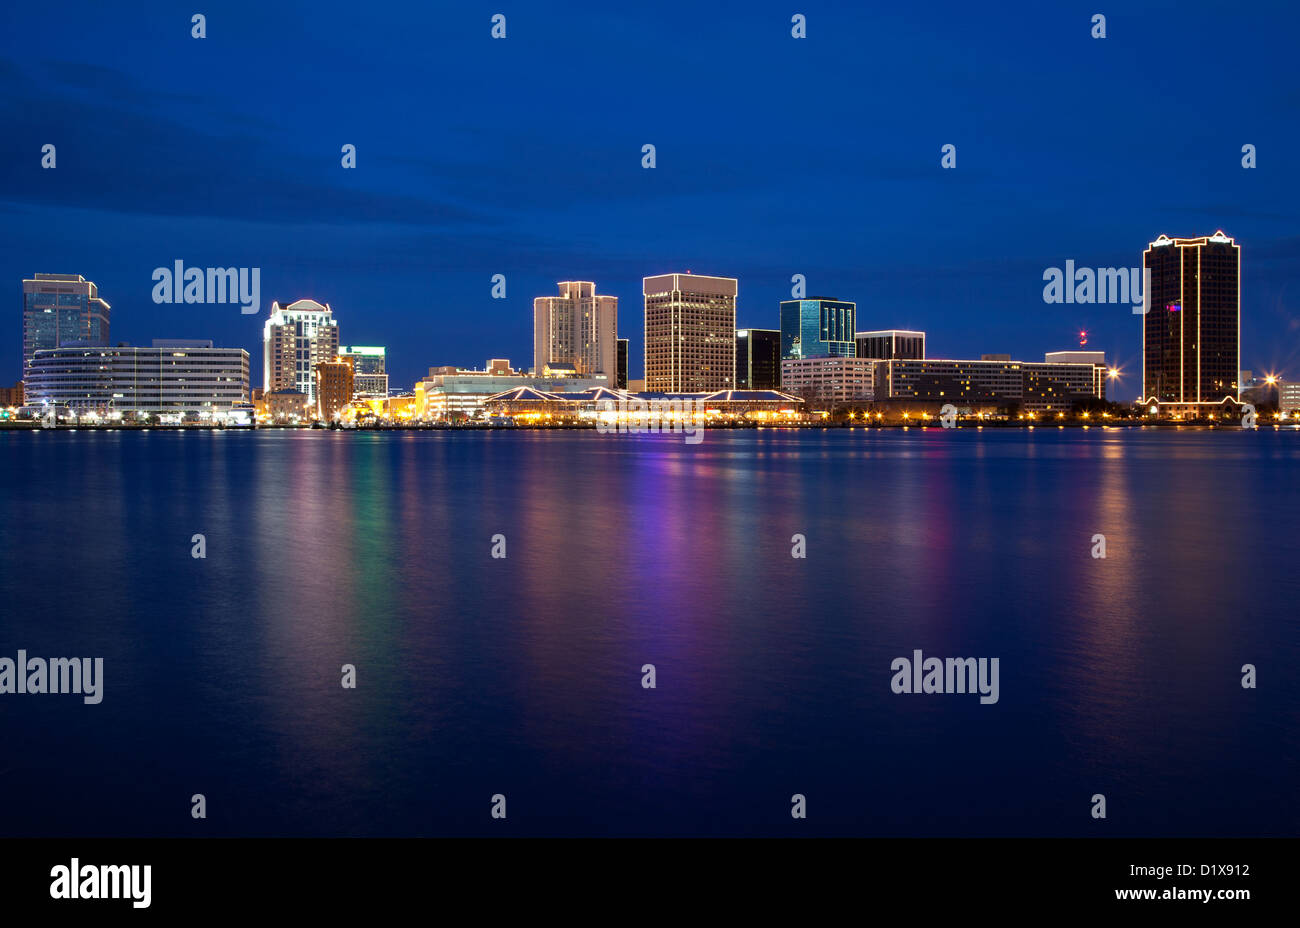 Norfolk Virginia Skyline Stock Photos & Norfolk Virginia Skyline ...